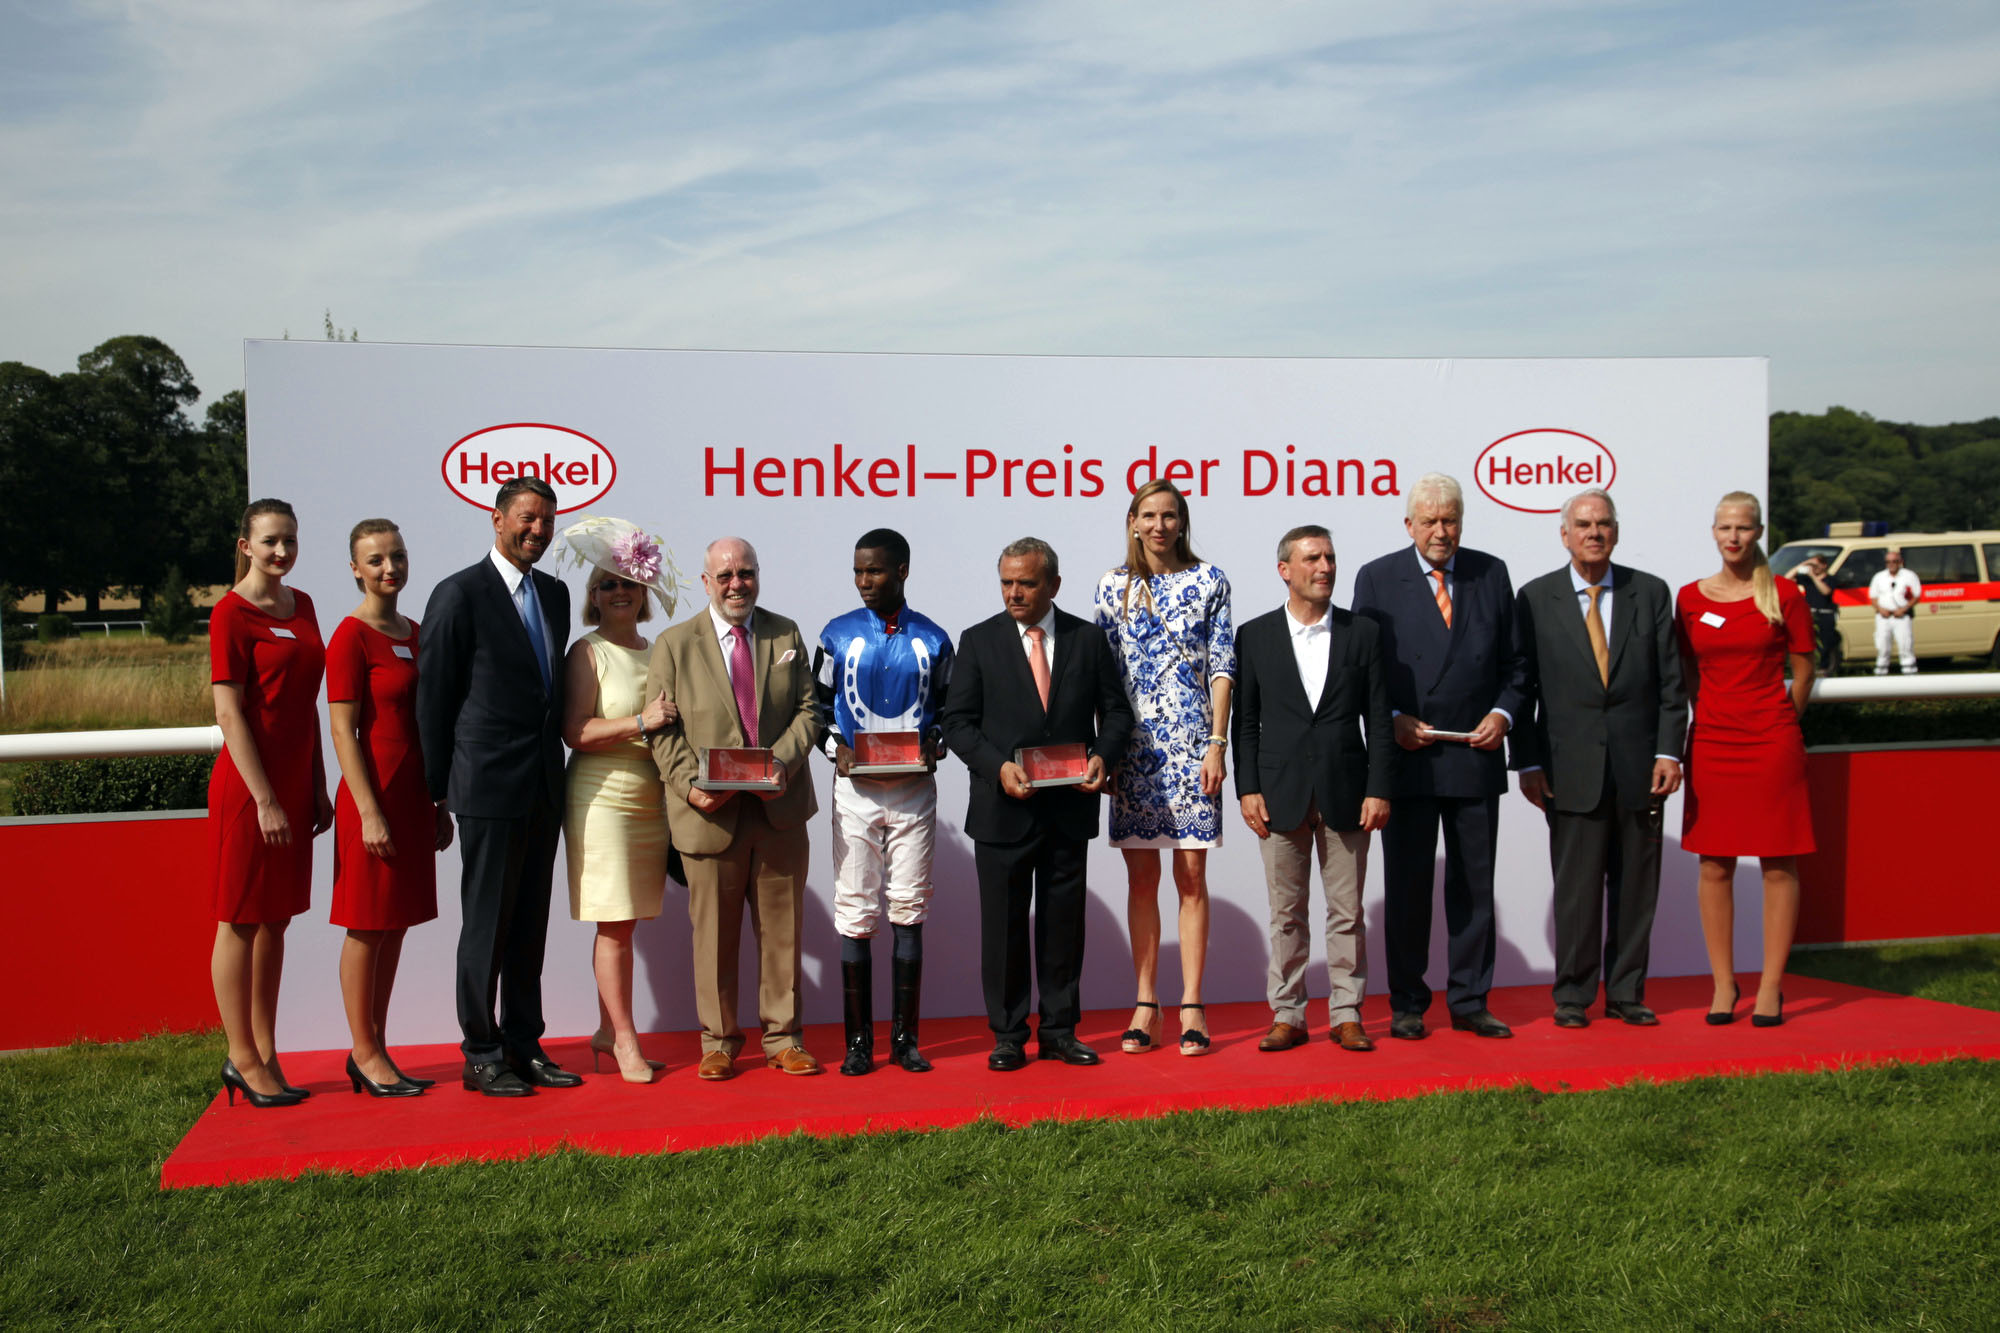 The award ceremony for the Henkel Prize of Diana. Foto: Henkel Press & Media Relations)